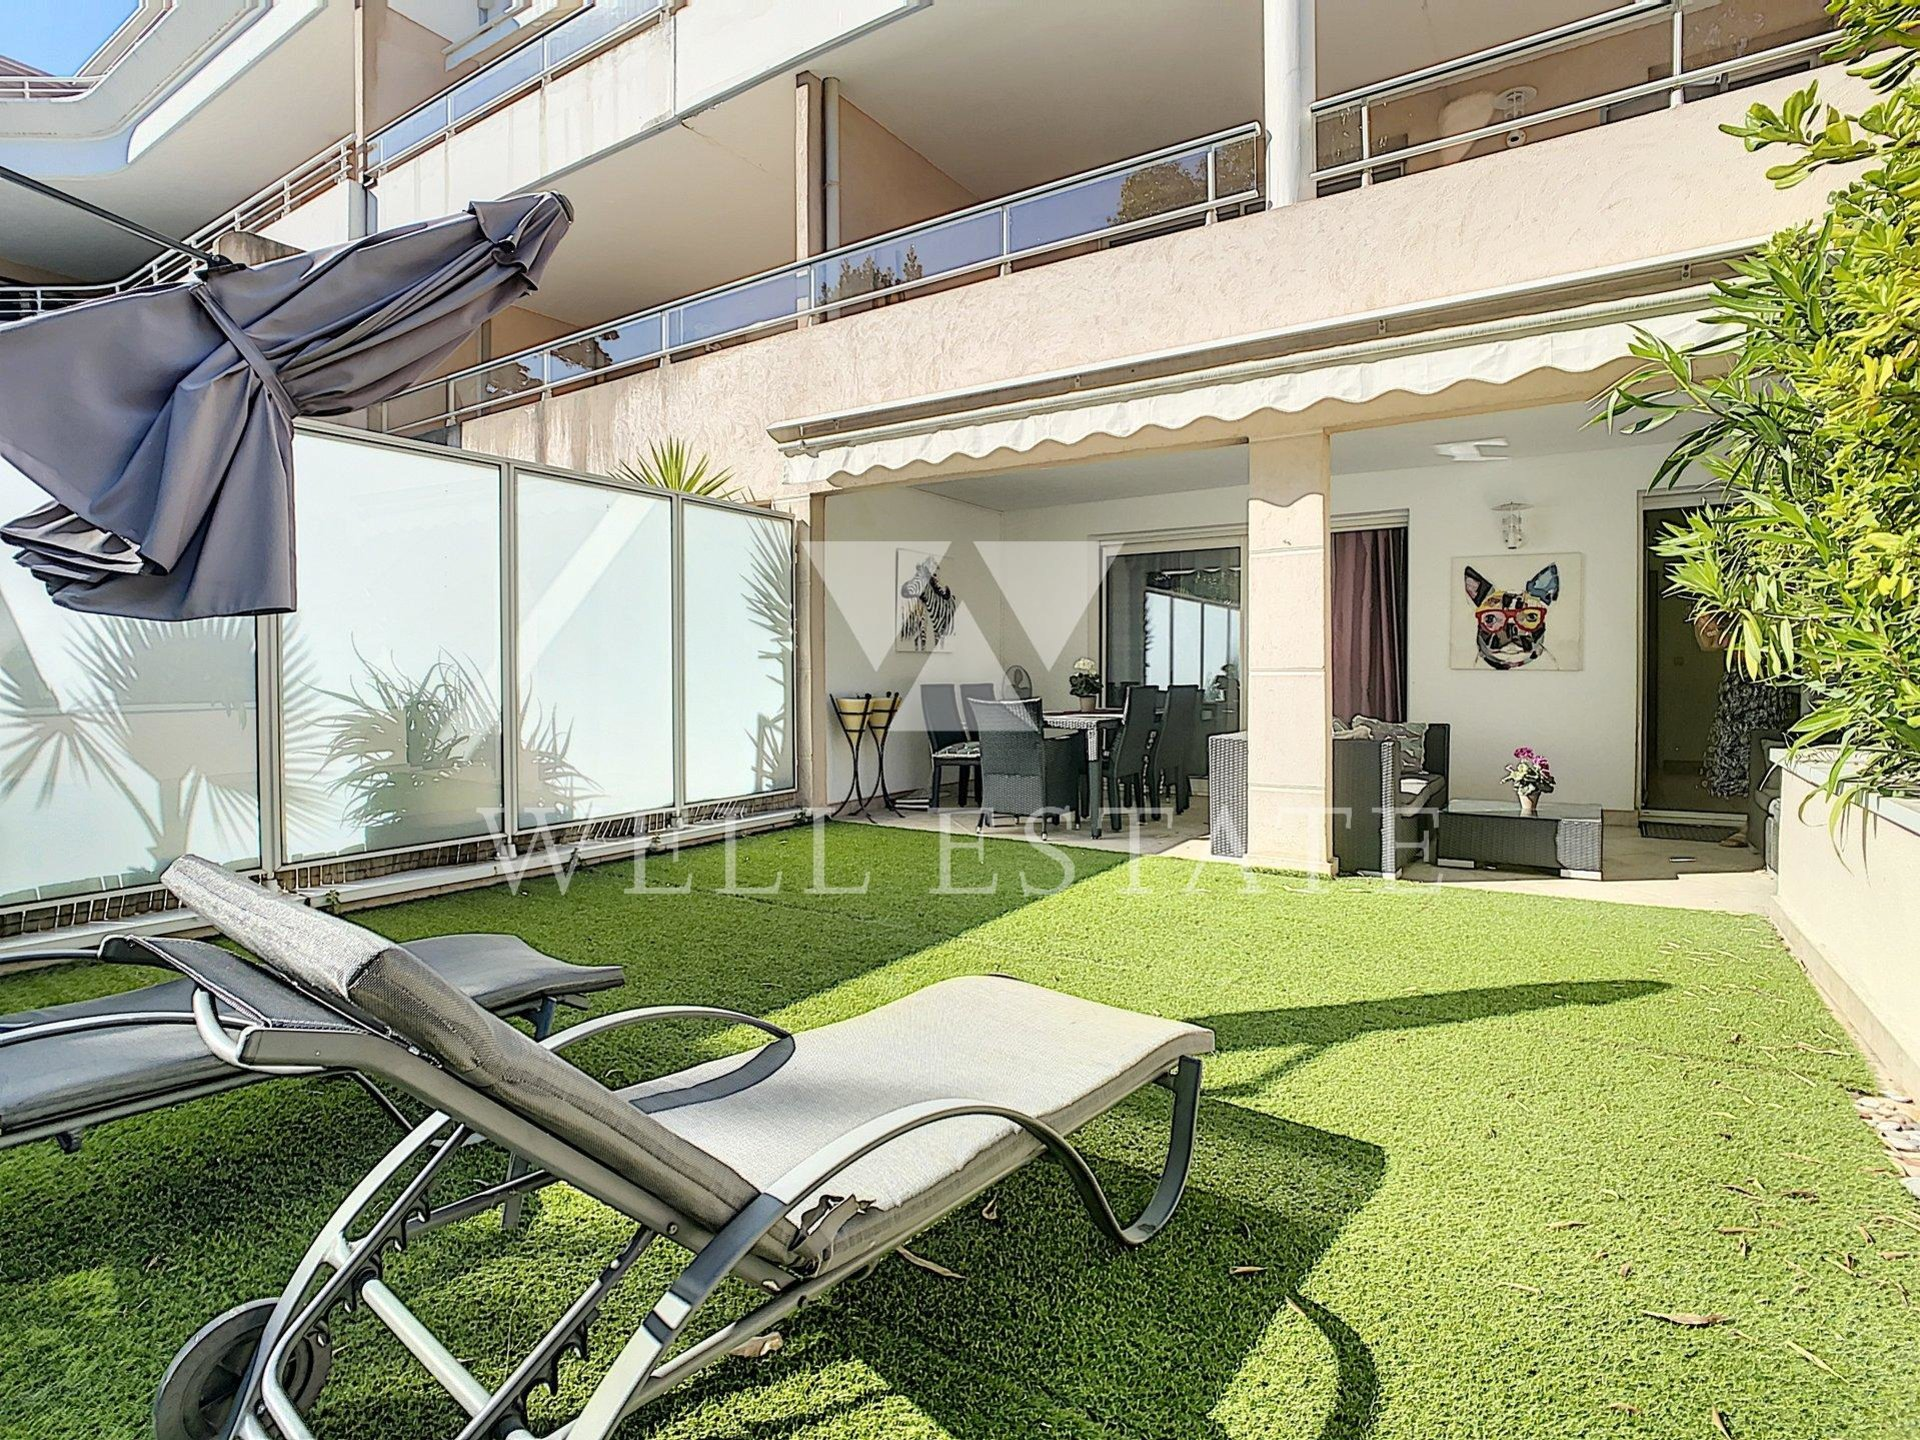 CANNES OXFORD NICE 3 BEDROOM APARTMENT 90M2 WITH SWIMMING POOL